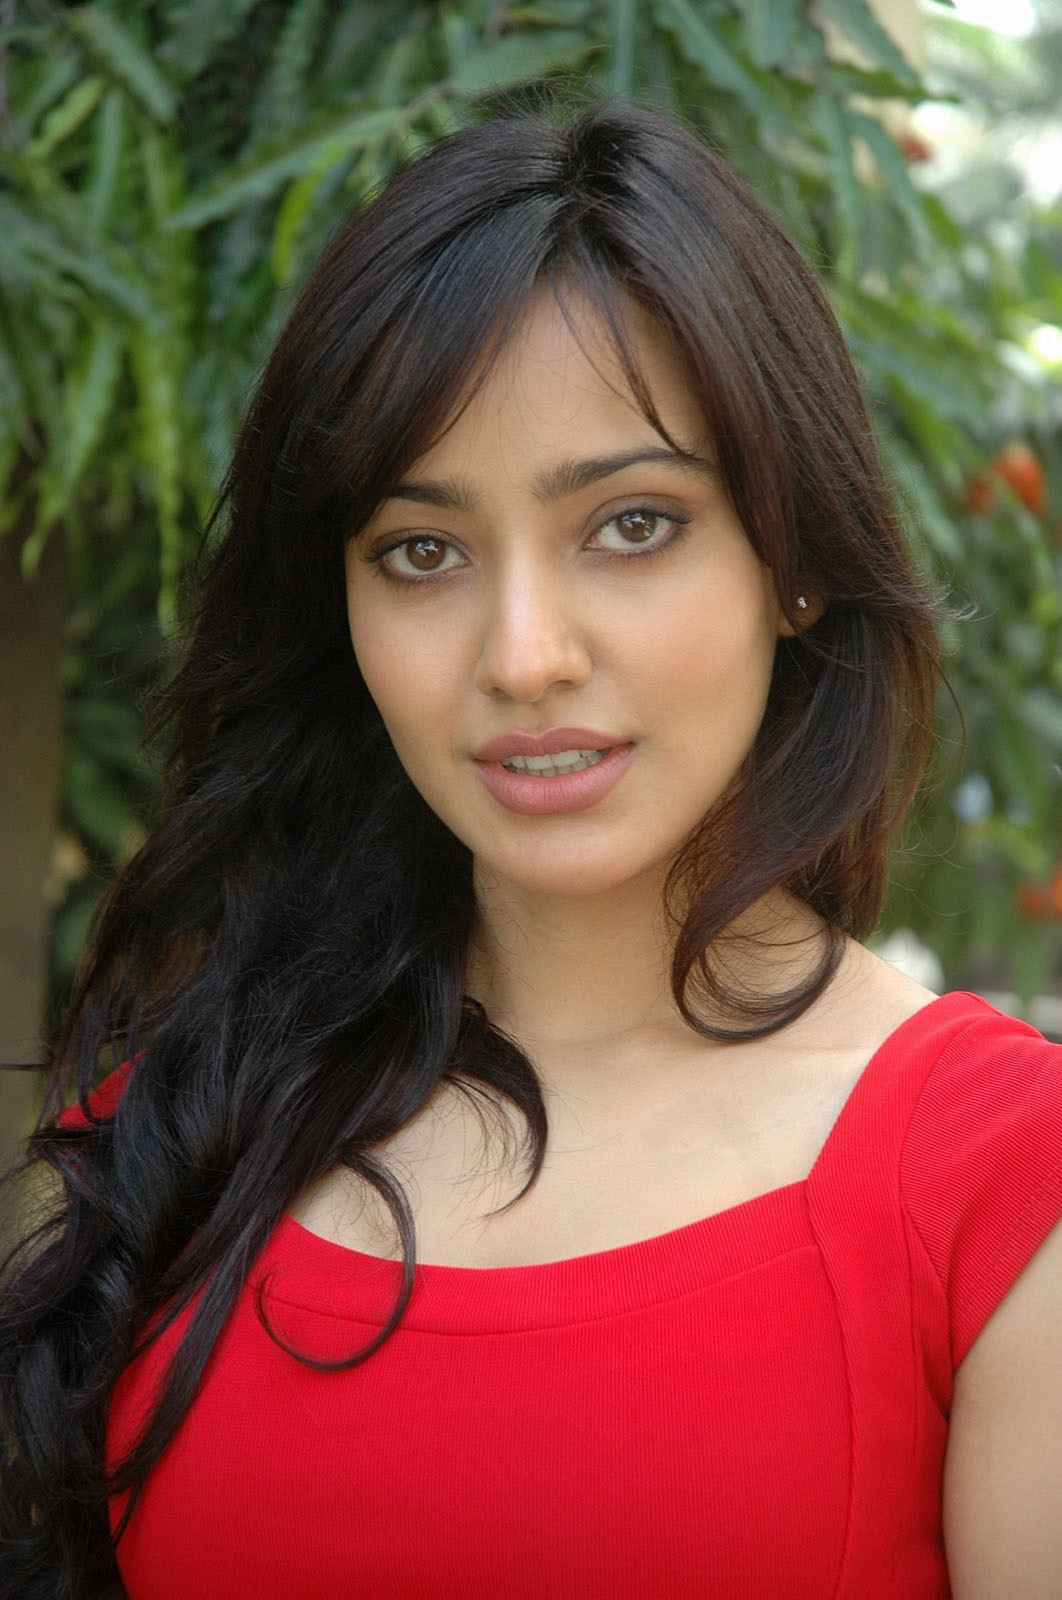 Neha Sharma naked (25 photo), Topless, Bikini, Selfie, bra 2018